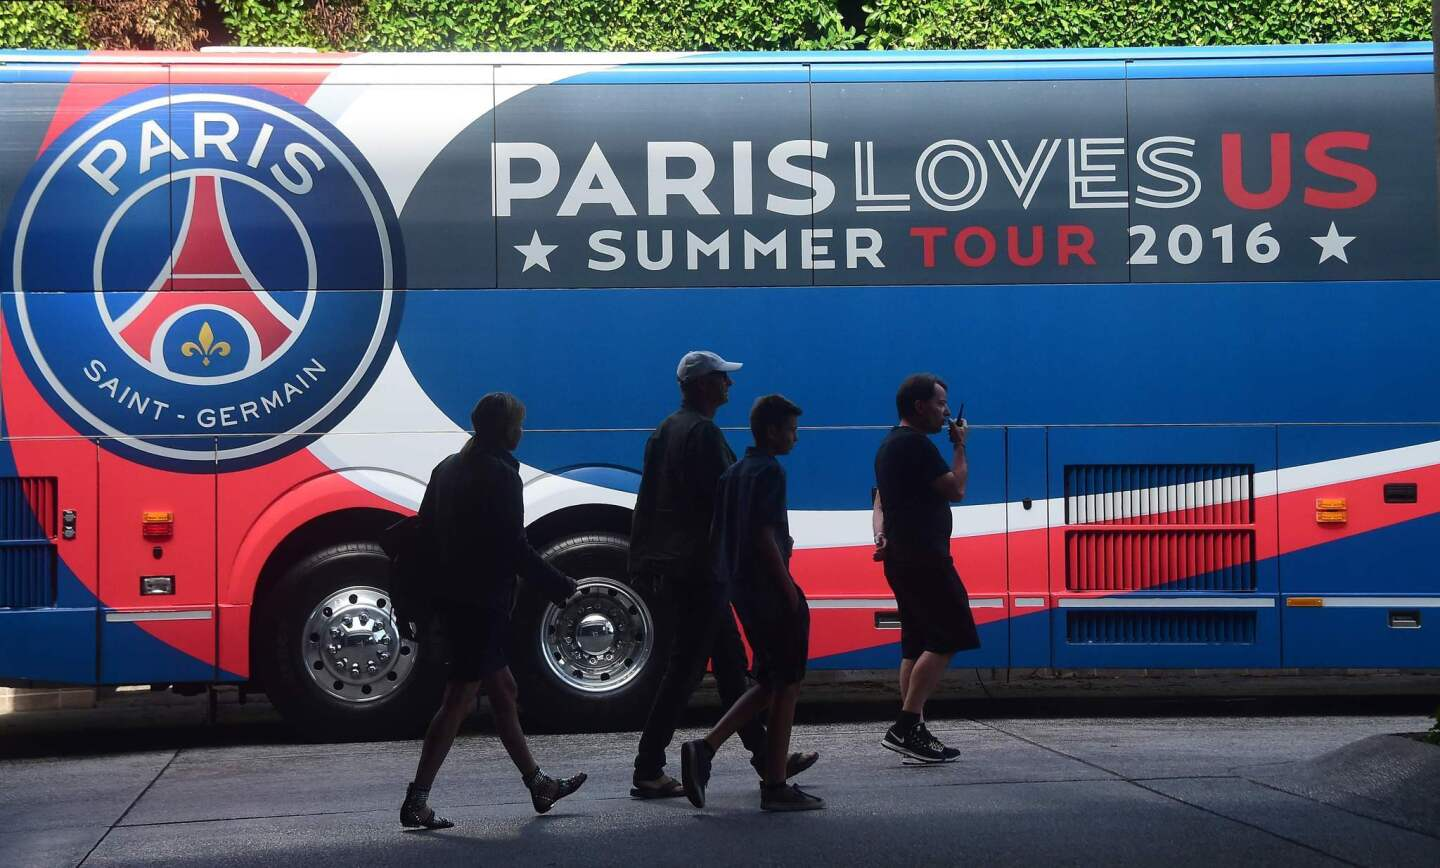 Pedestrians walk past the Paris Sant-Germain team bus transporting players to a training session at Loyola Marymount University in Los Angeles, California on July 26, 2016, one day ahead of their International Champions Cup soccer match against Real Madrid in Columbus, Ohio. The squad will return to California following that encounter for a July 30 match against Leicester City in Carson, California. / AFP PHOTO / Frederic J. BROWNFREDERIC J. BROWN/AFP/Getty Images ** OUTS - ELSENT, FPG, CM - OUTS * NM, PH, VA if sourced by CT, LA or MoD **